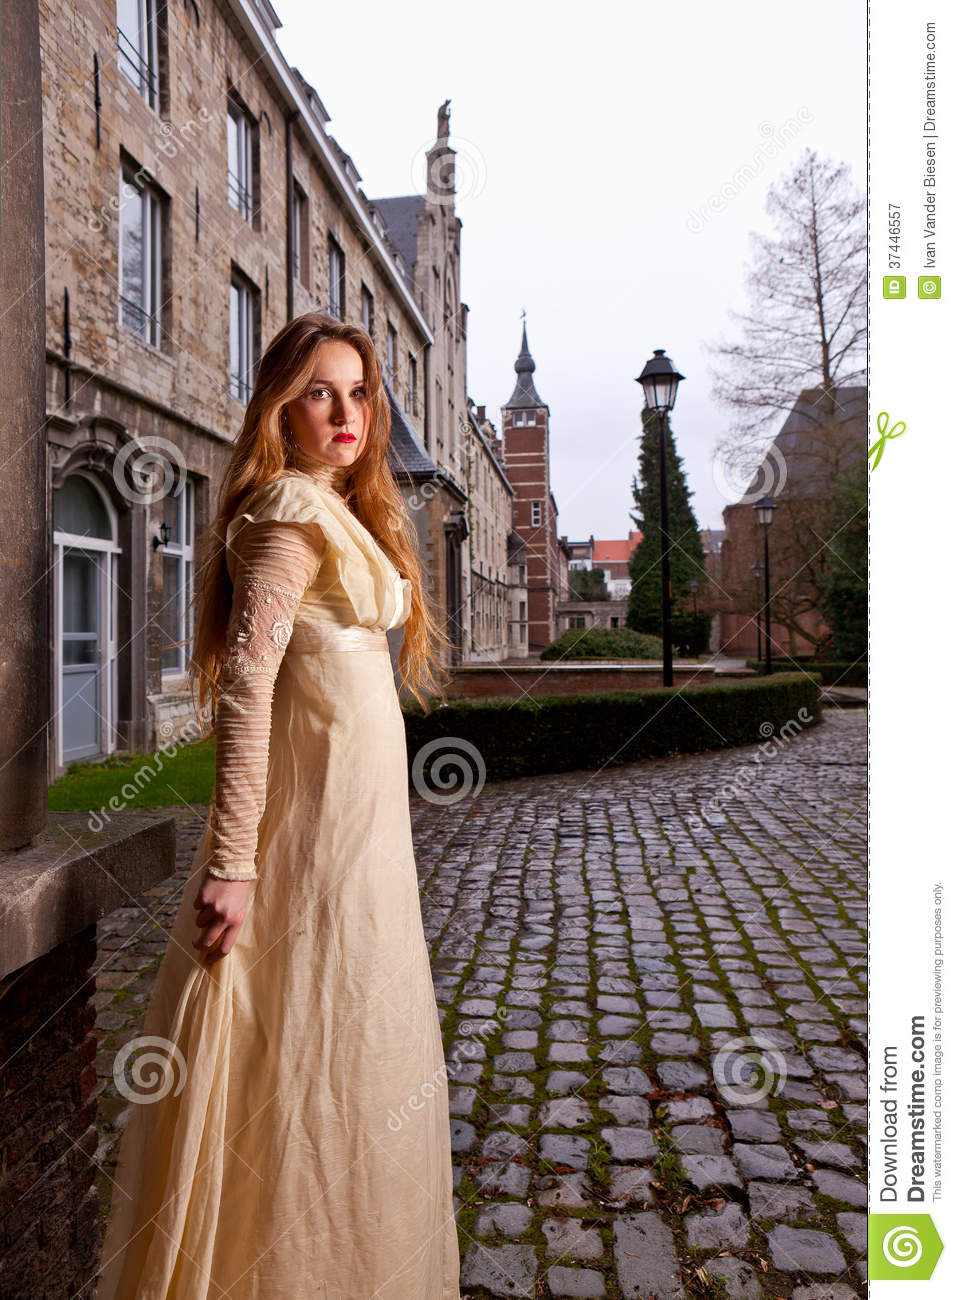 Girl in Victorian dress in a old city square